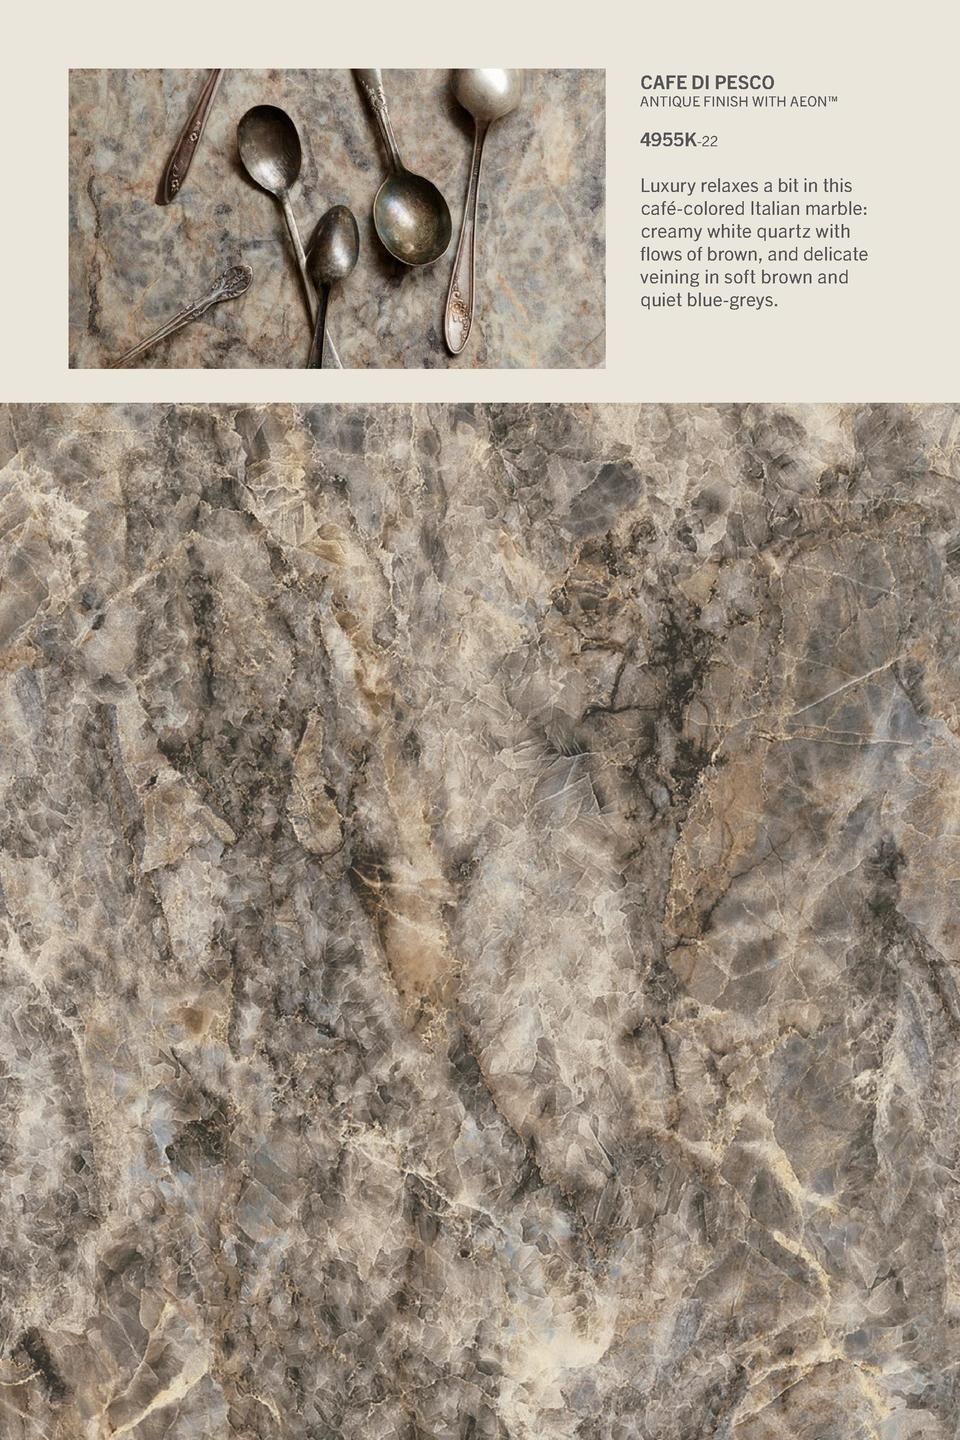 Cafe di Pesco  Antique Finish With Aeon     4955K-22 Luxury relaxes a bit in this caf  -colored Italian marble  creamy whi...